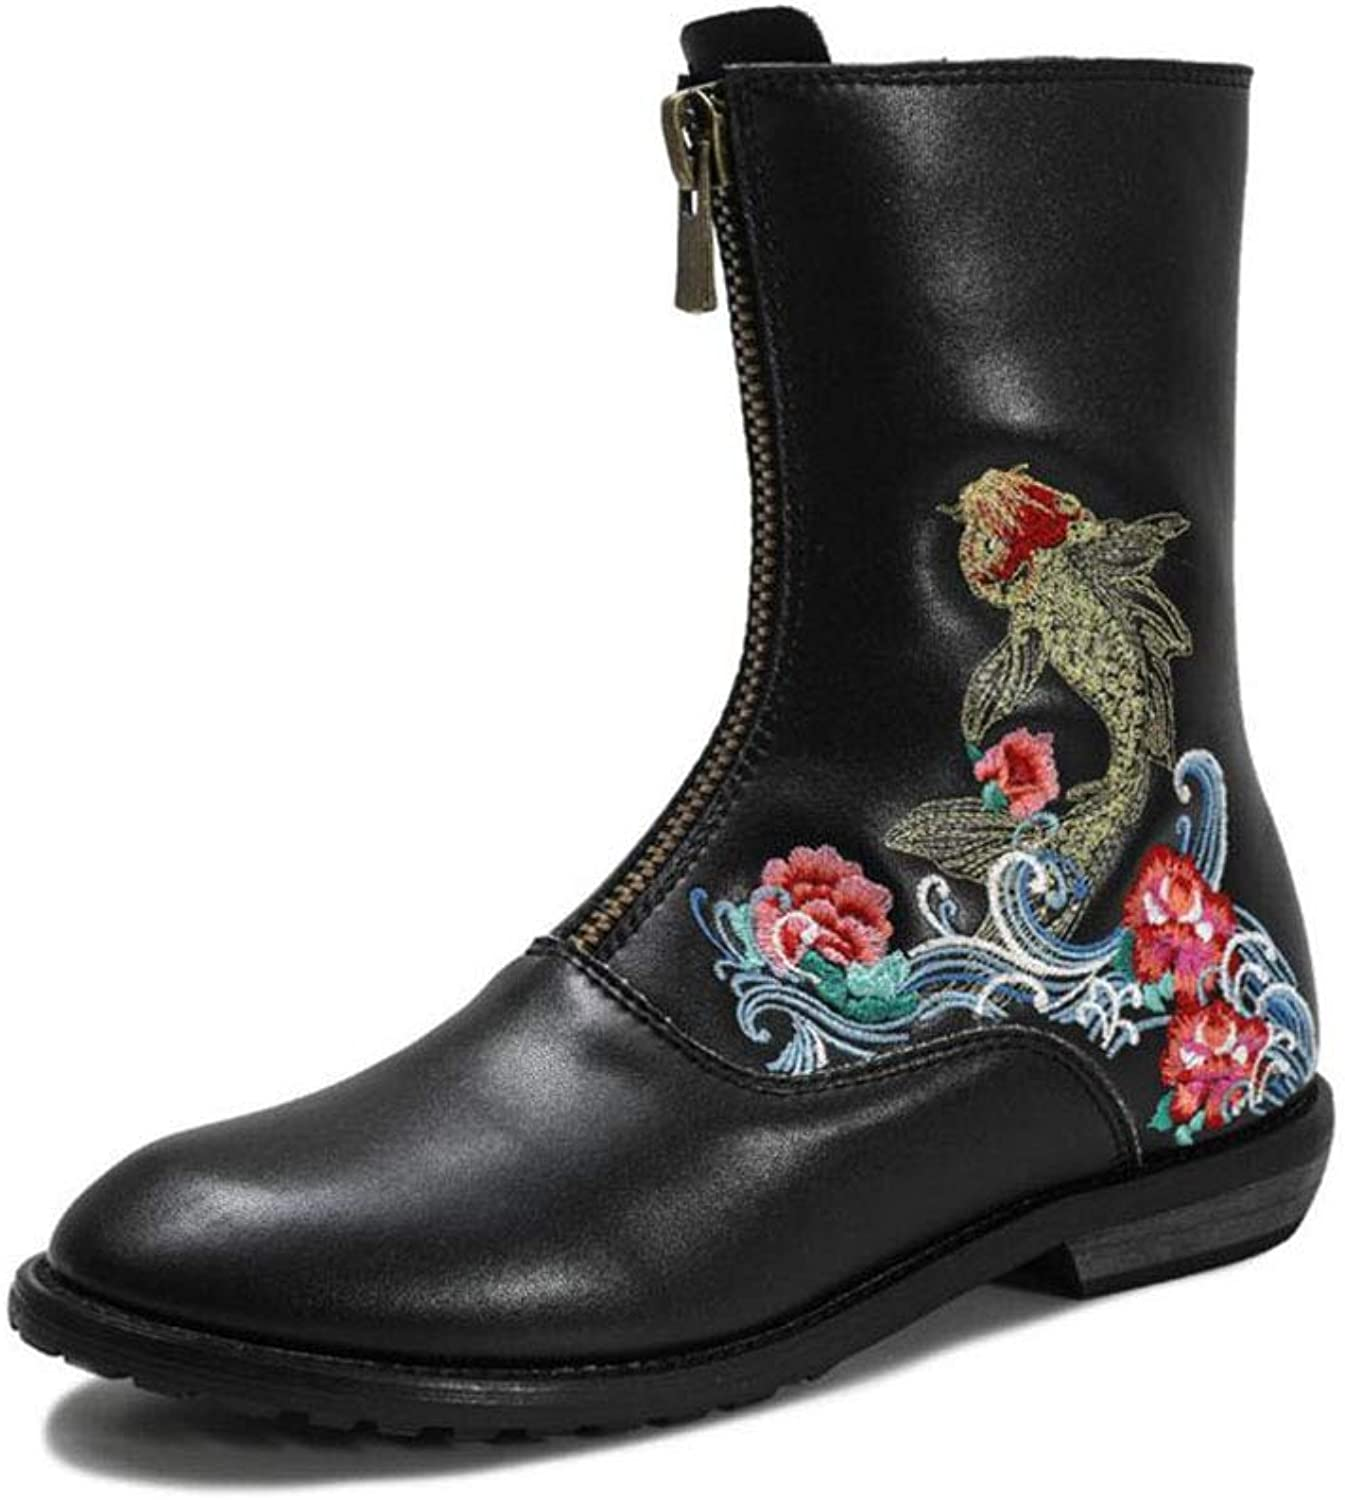 Women's Booties, Autumn Winter New National Style Embroidery Front Zipper Boots Fashion Casual shoes (color   Black, Size   35)